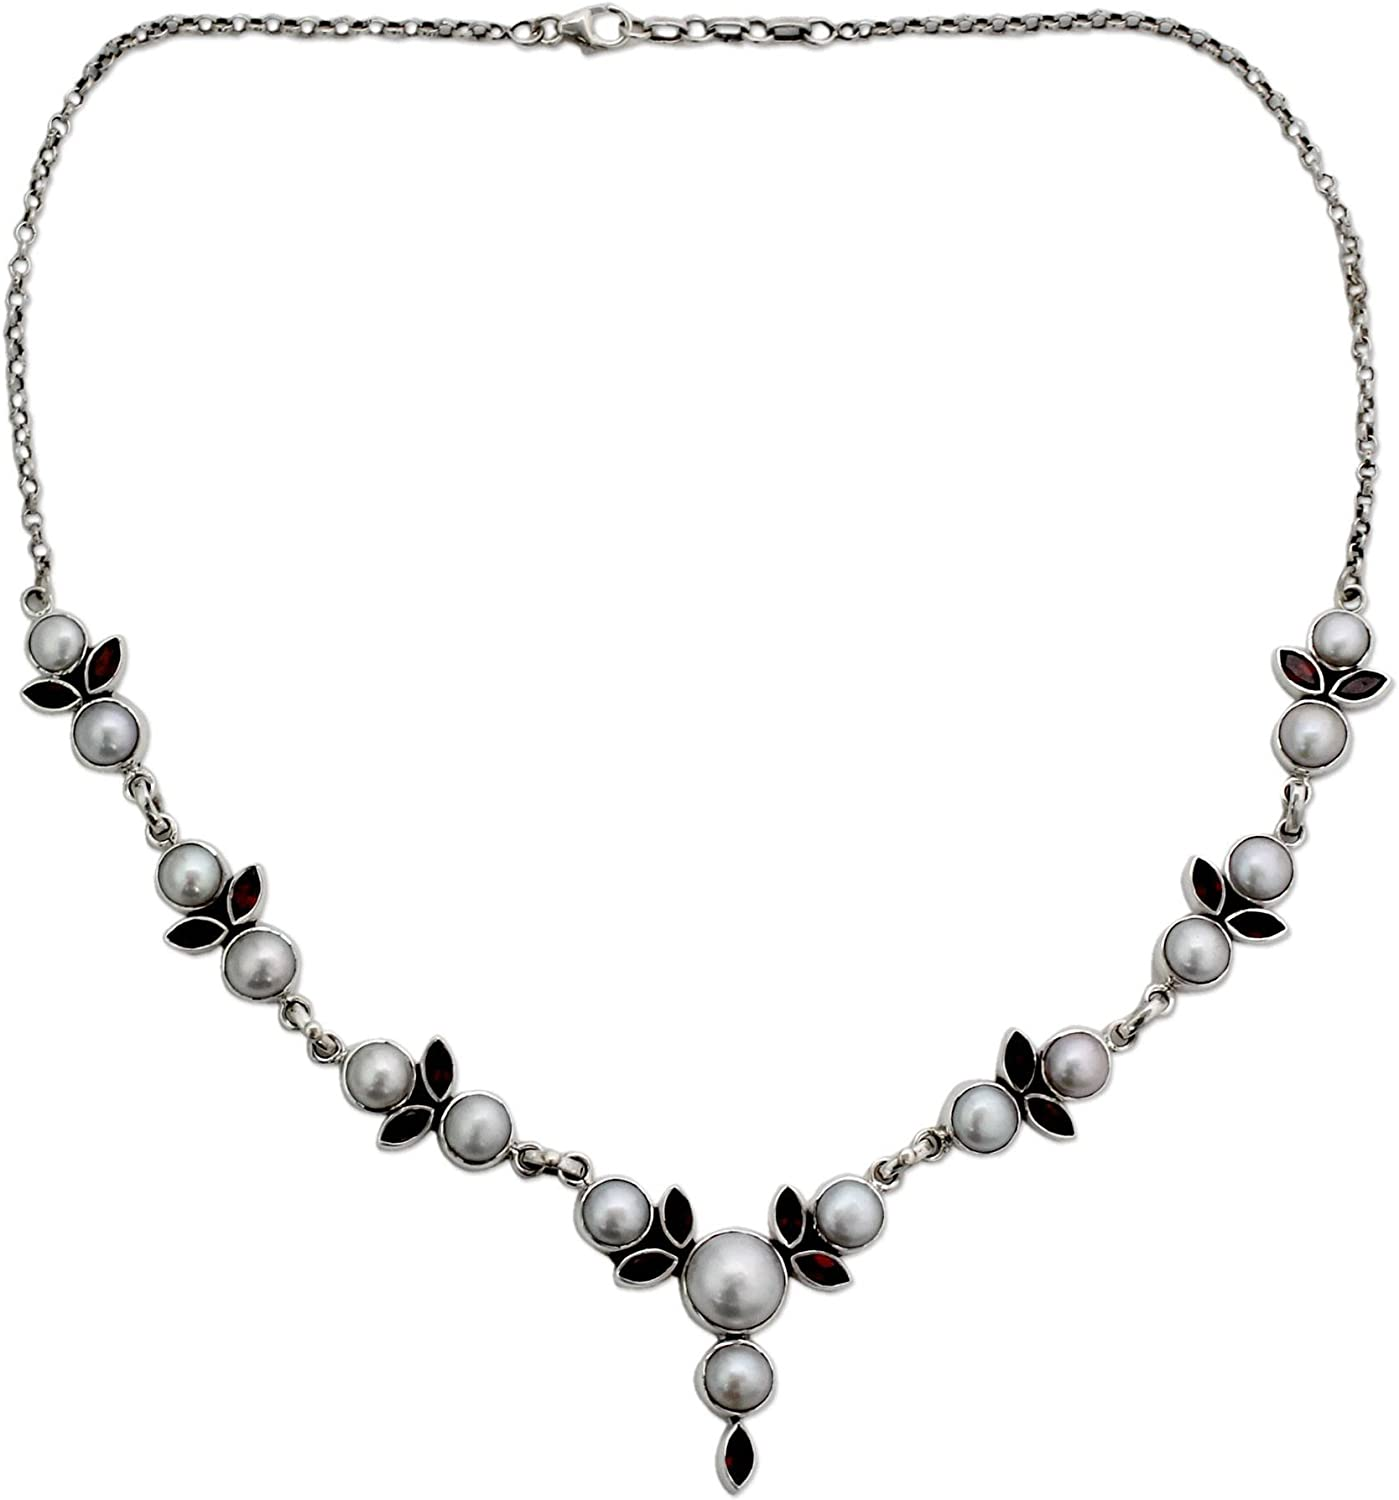 NOVICA Garnet Cultured Max Clearance SALE! Limited time! 63% OFF Freshwater Pearl Nec .925 Sterling Silver